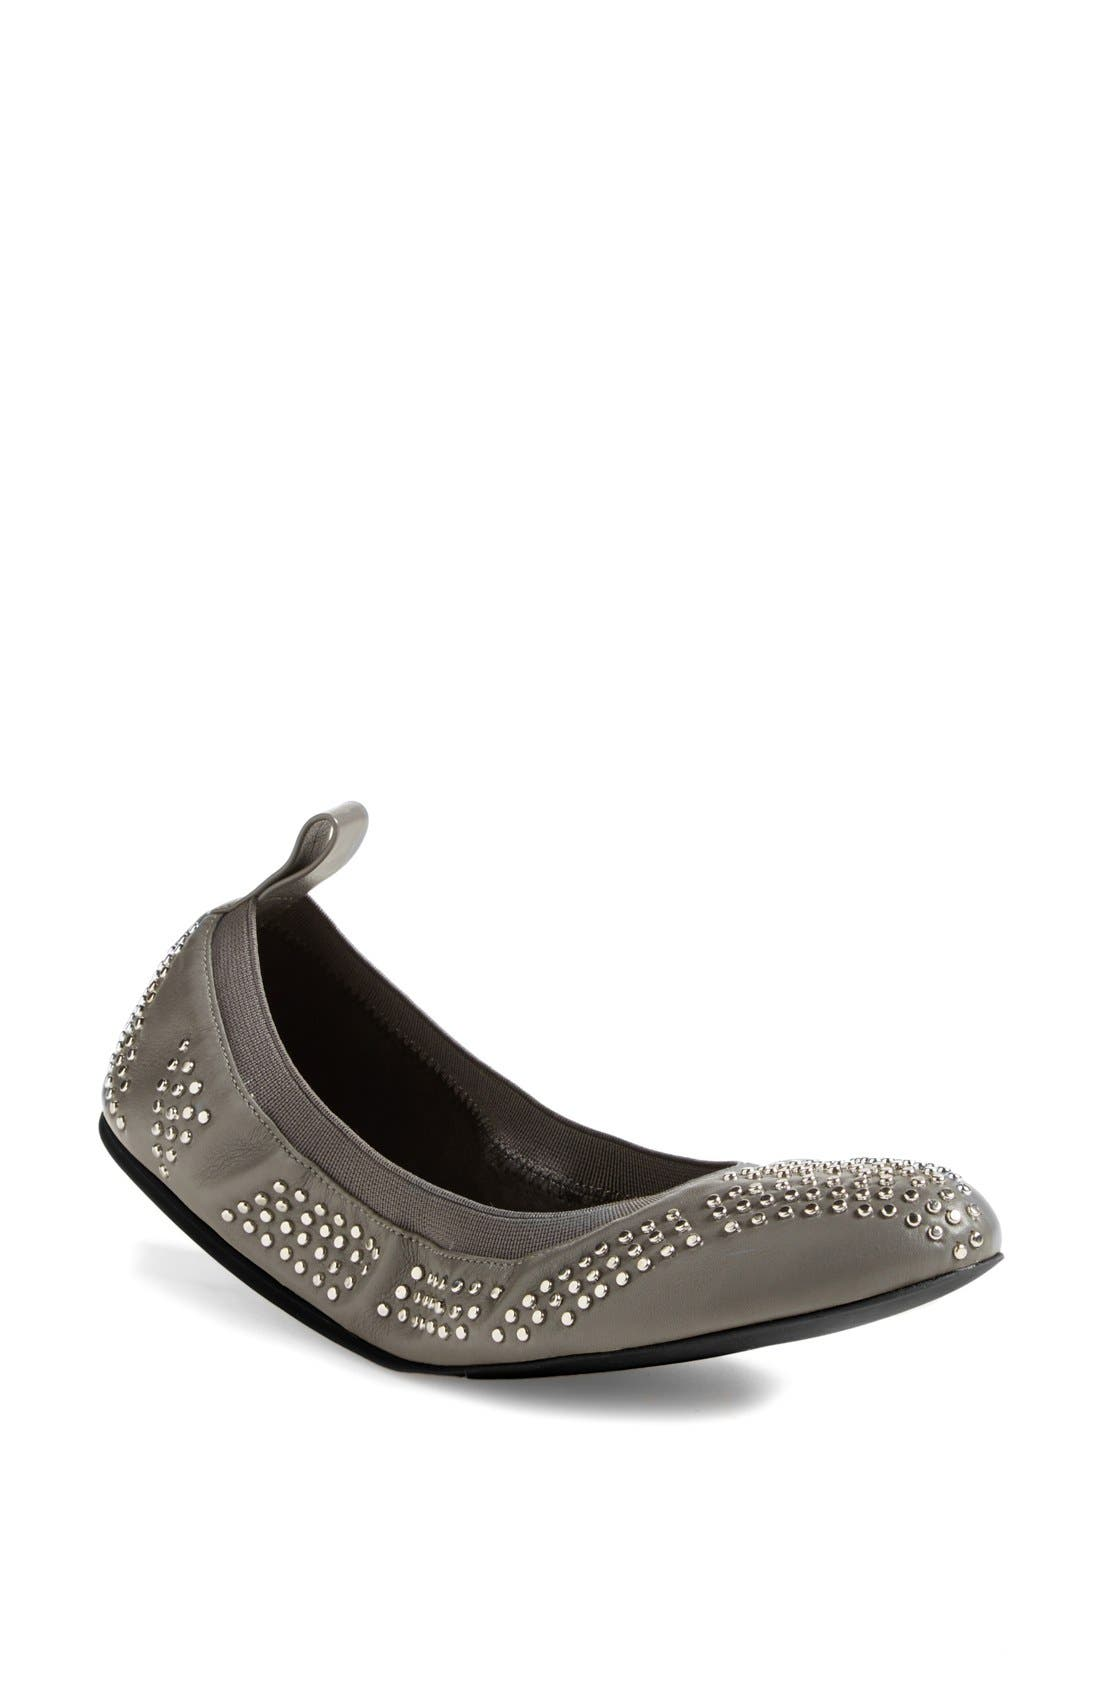 Alternate Image 1 Selected - See by Chloé Studded Leather Ballet Flat (Nordstrom Exclusive) (Women)